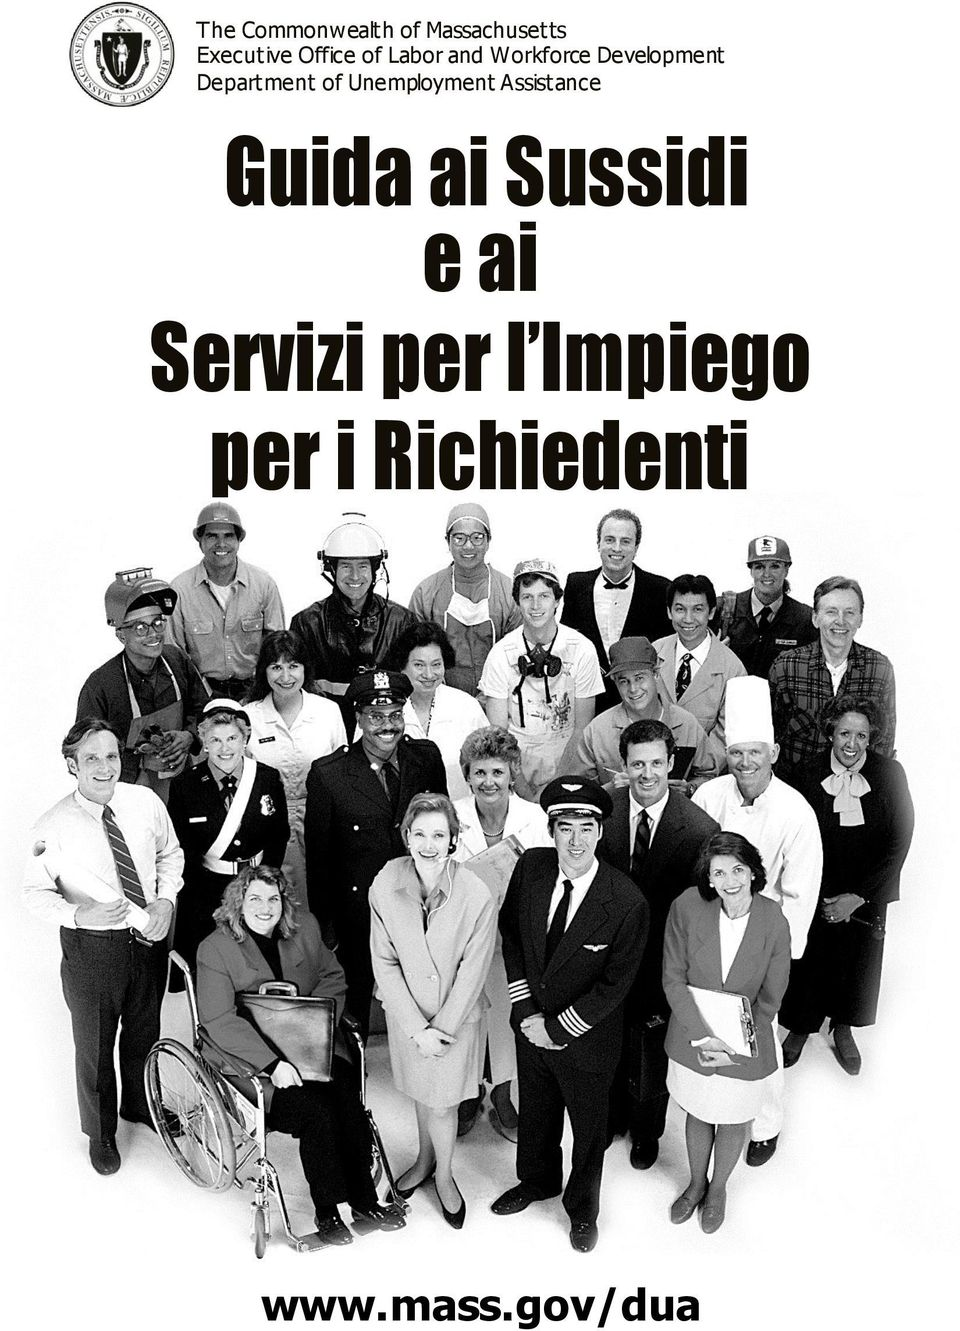 Unemployment Assistance Guida ai Sussidi e ai